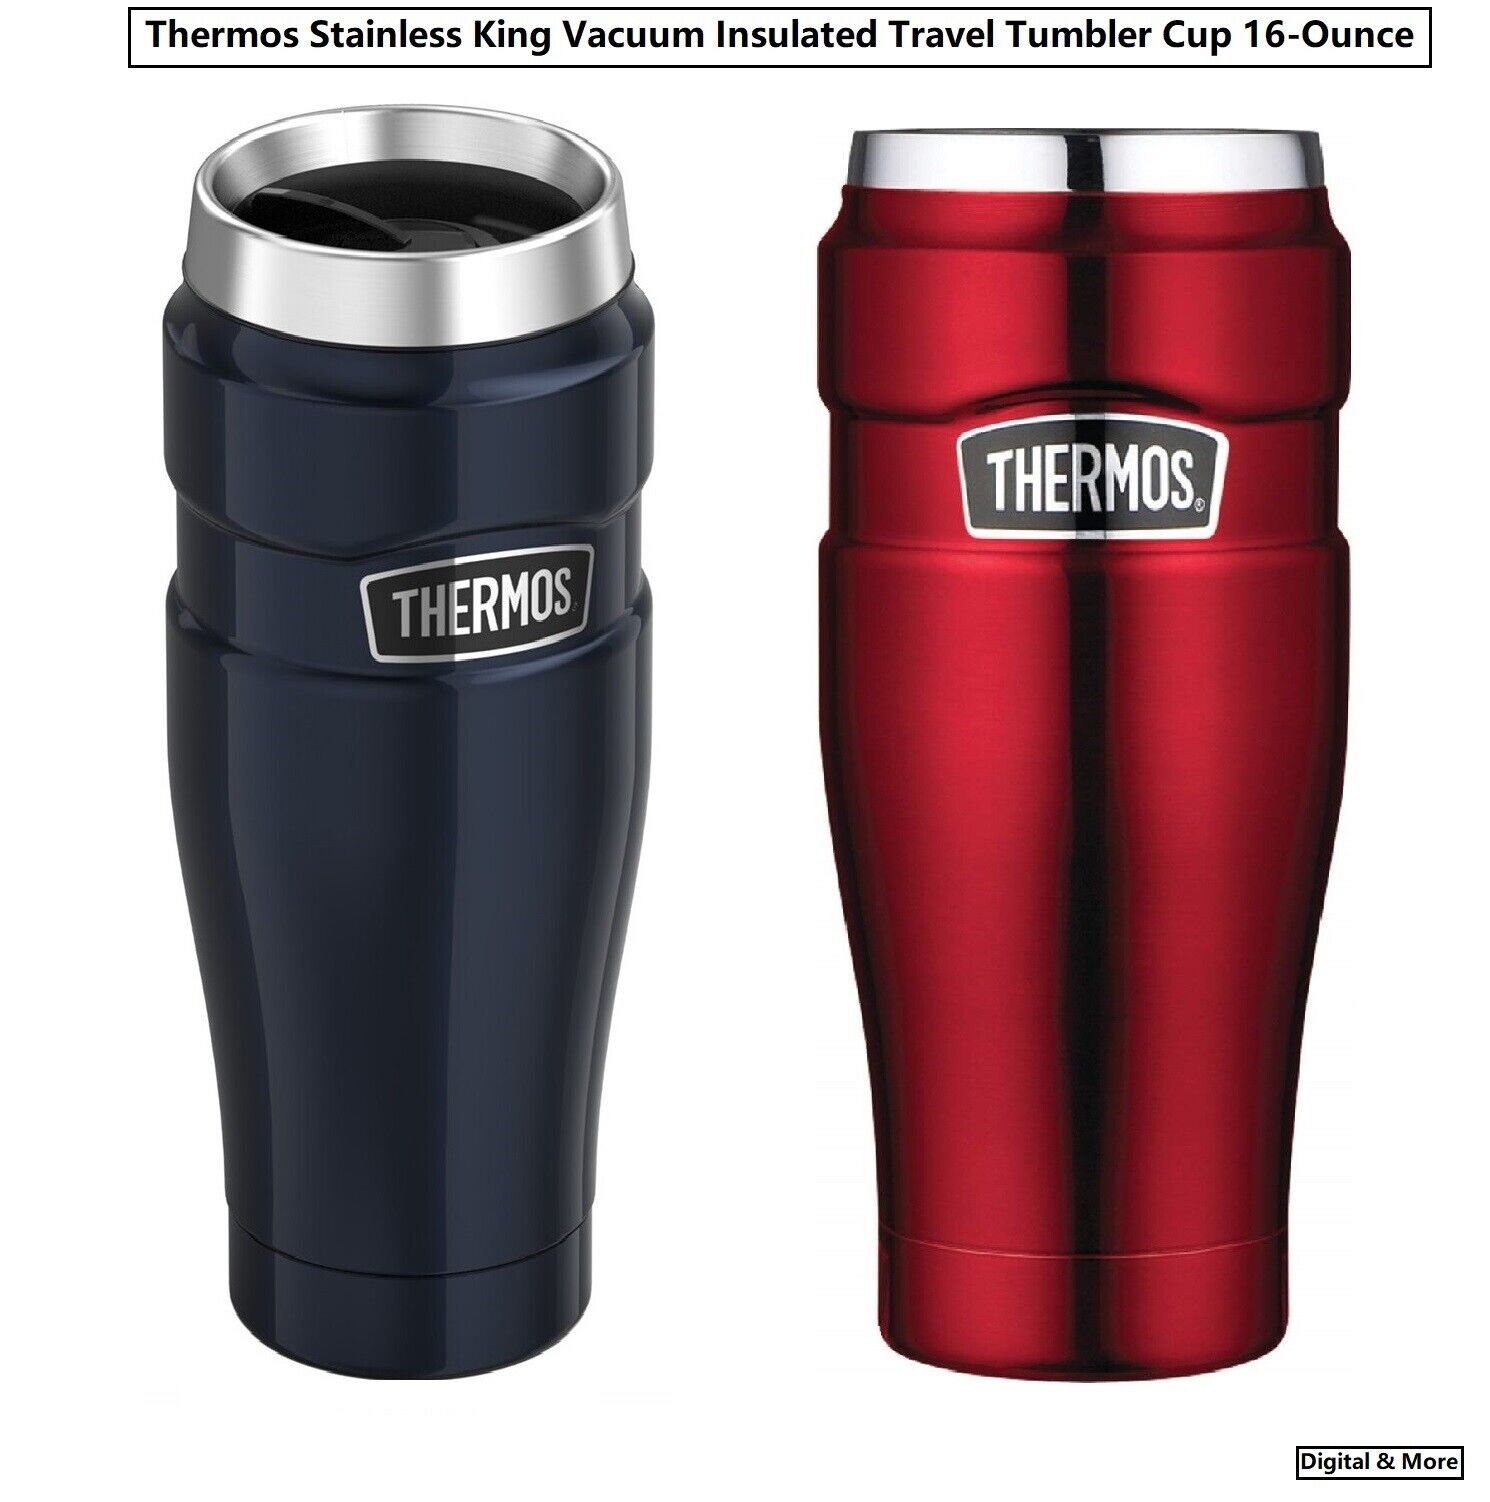 Genuine Thermos Stainless King Vacuum Insulated Travel Tumbl